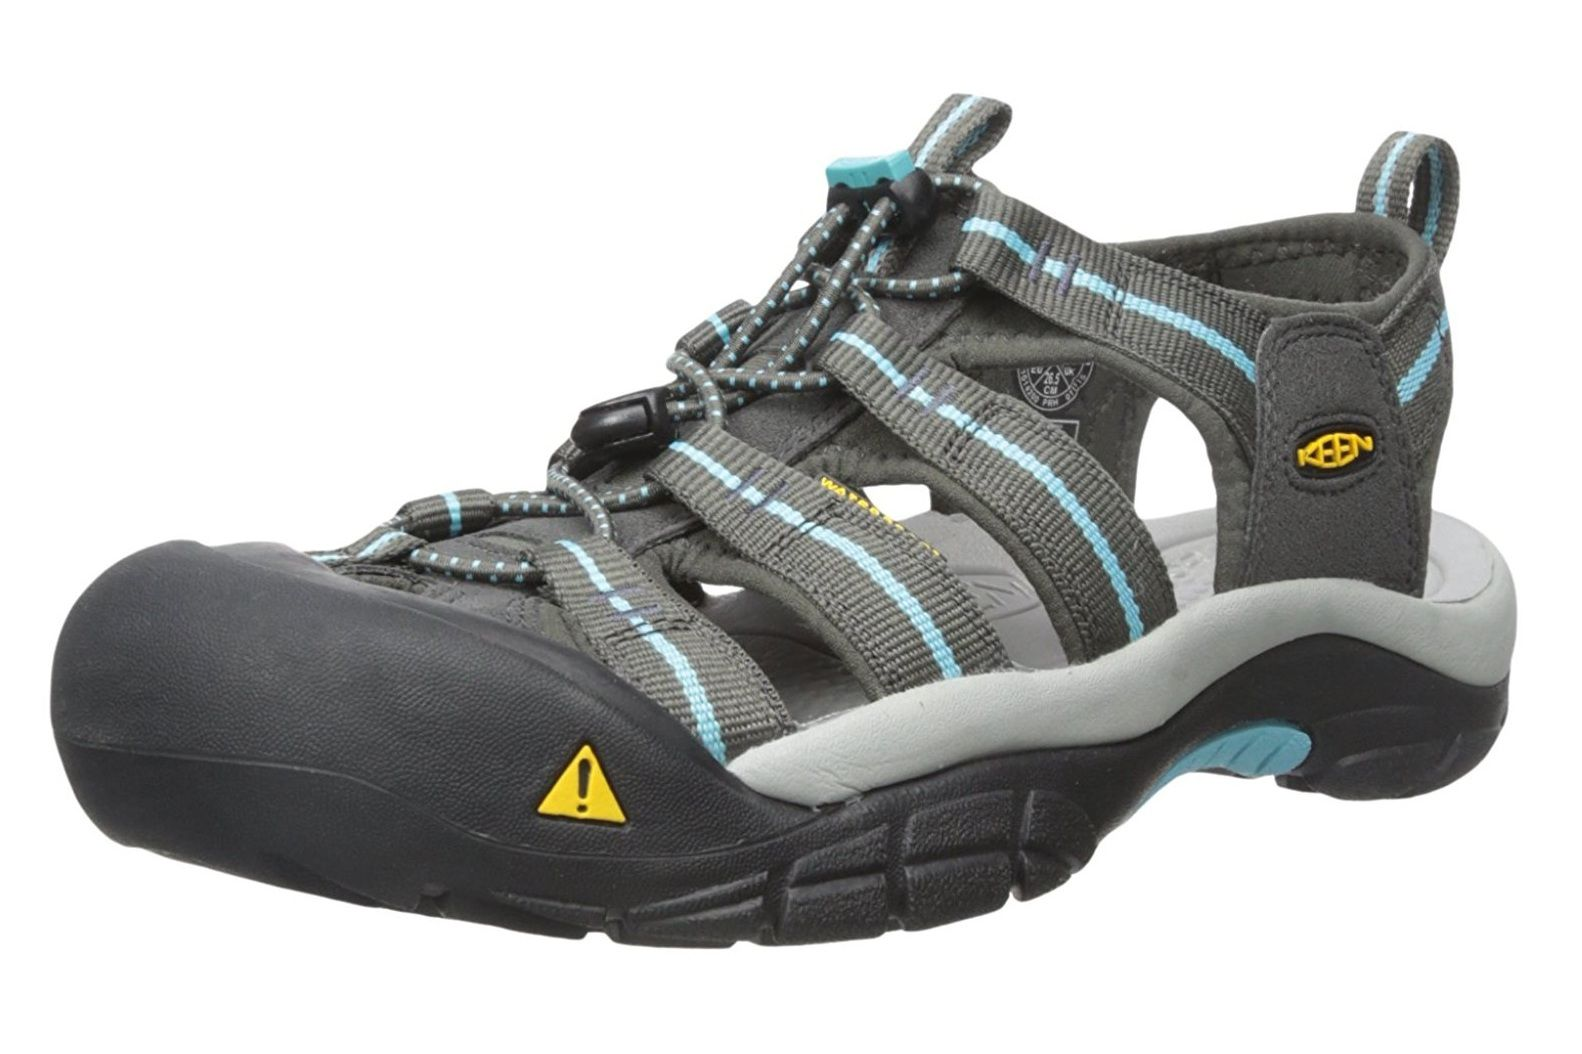 af04184a2caf The 9 Best Walking Sandals of 2019